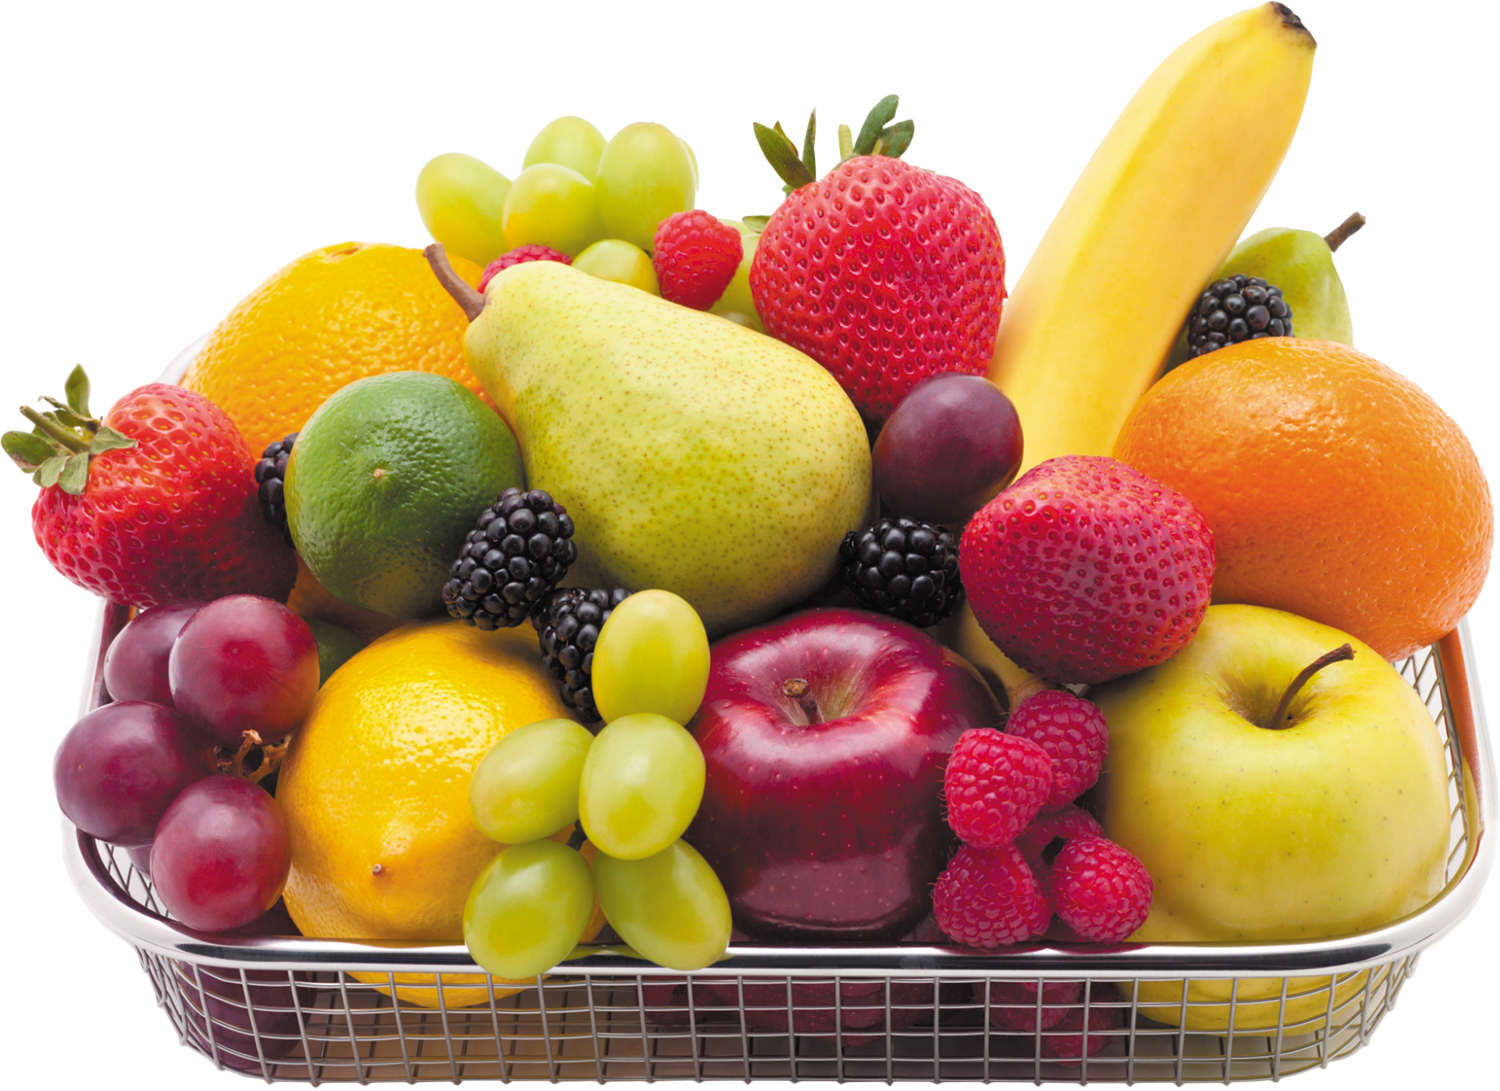 Ask the doctors: How much fruit can I eat and stay within ...